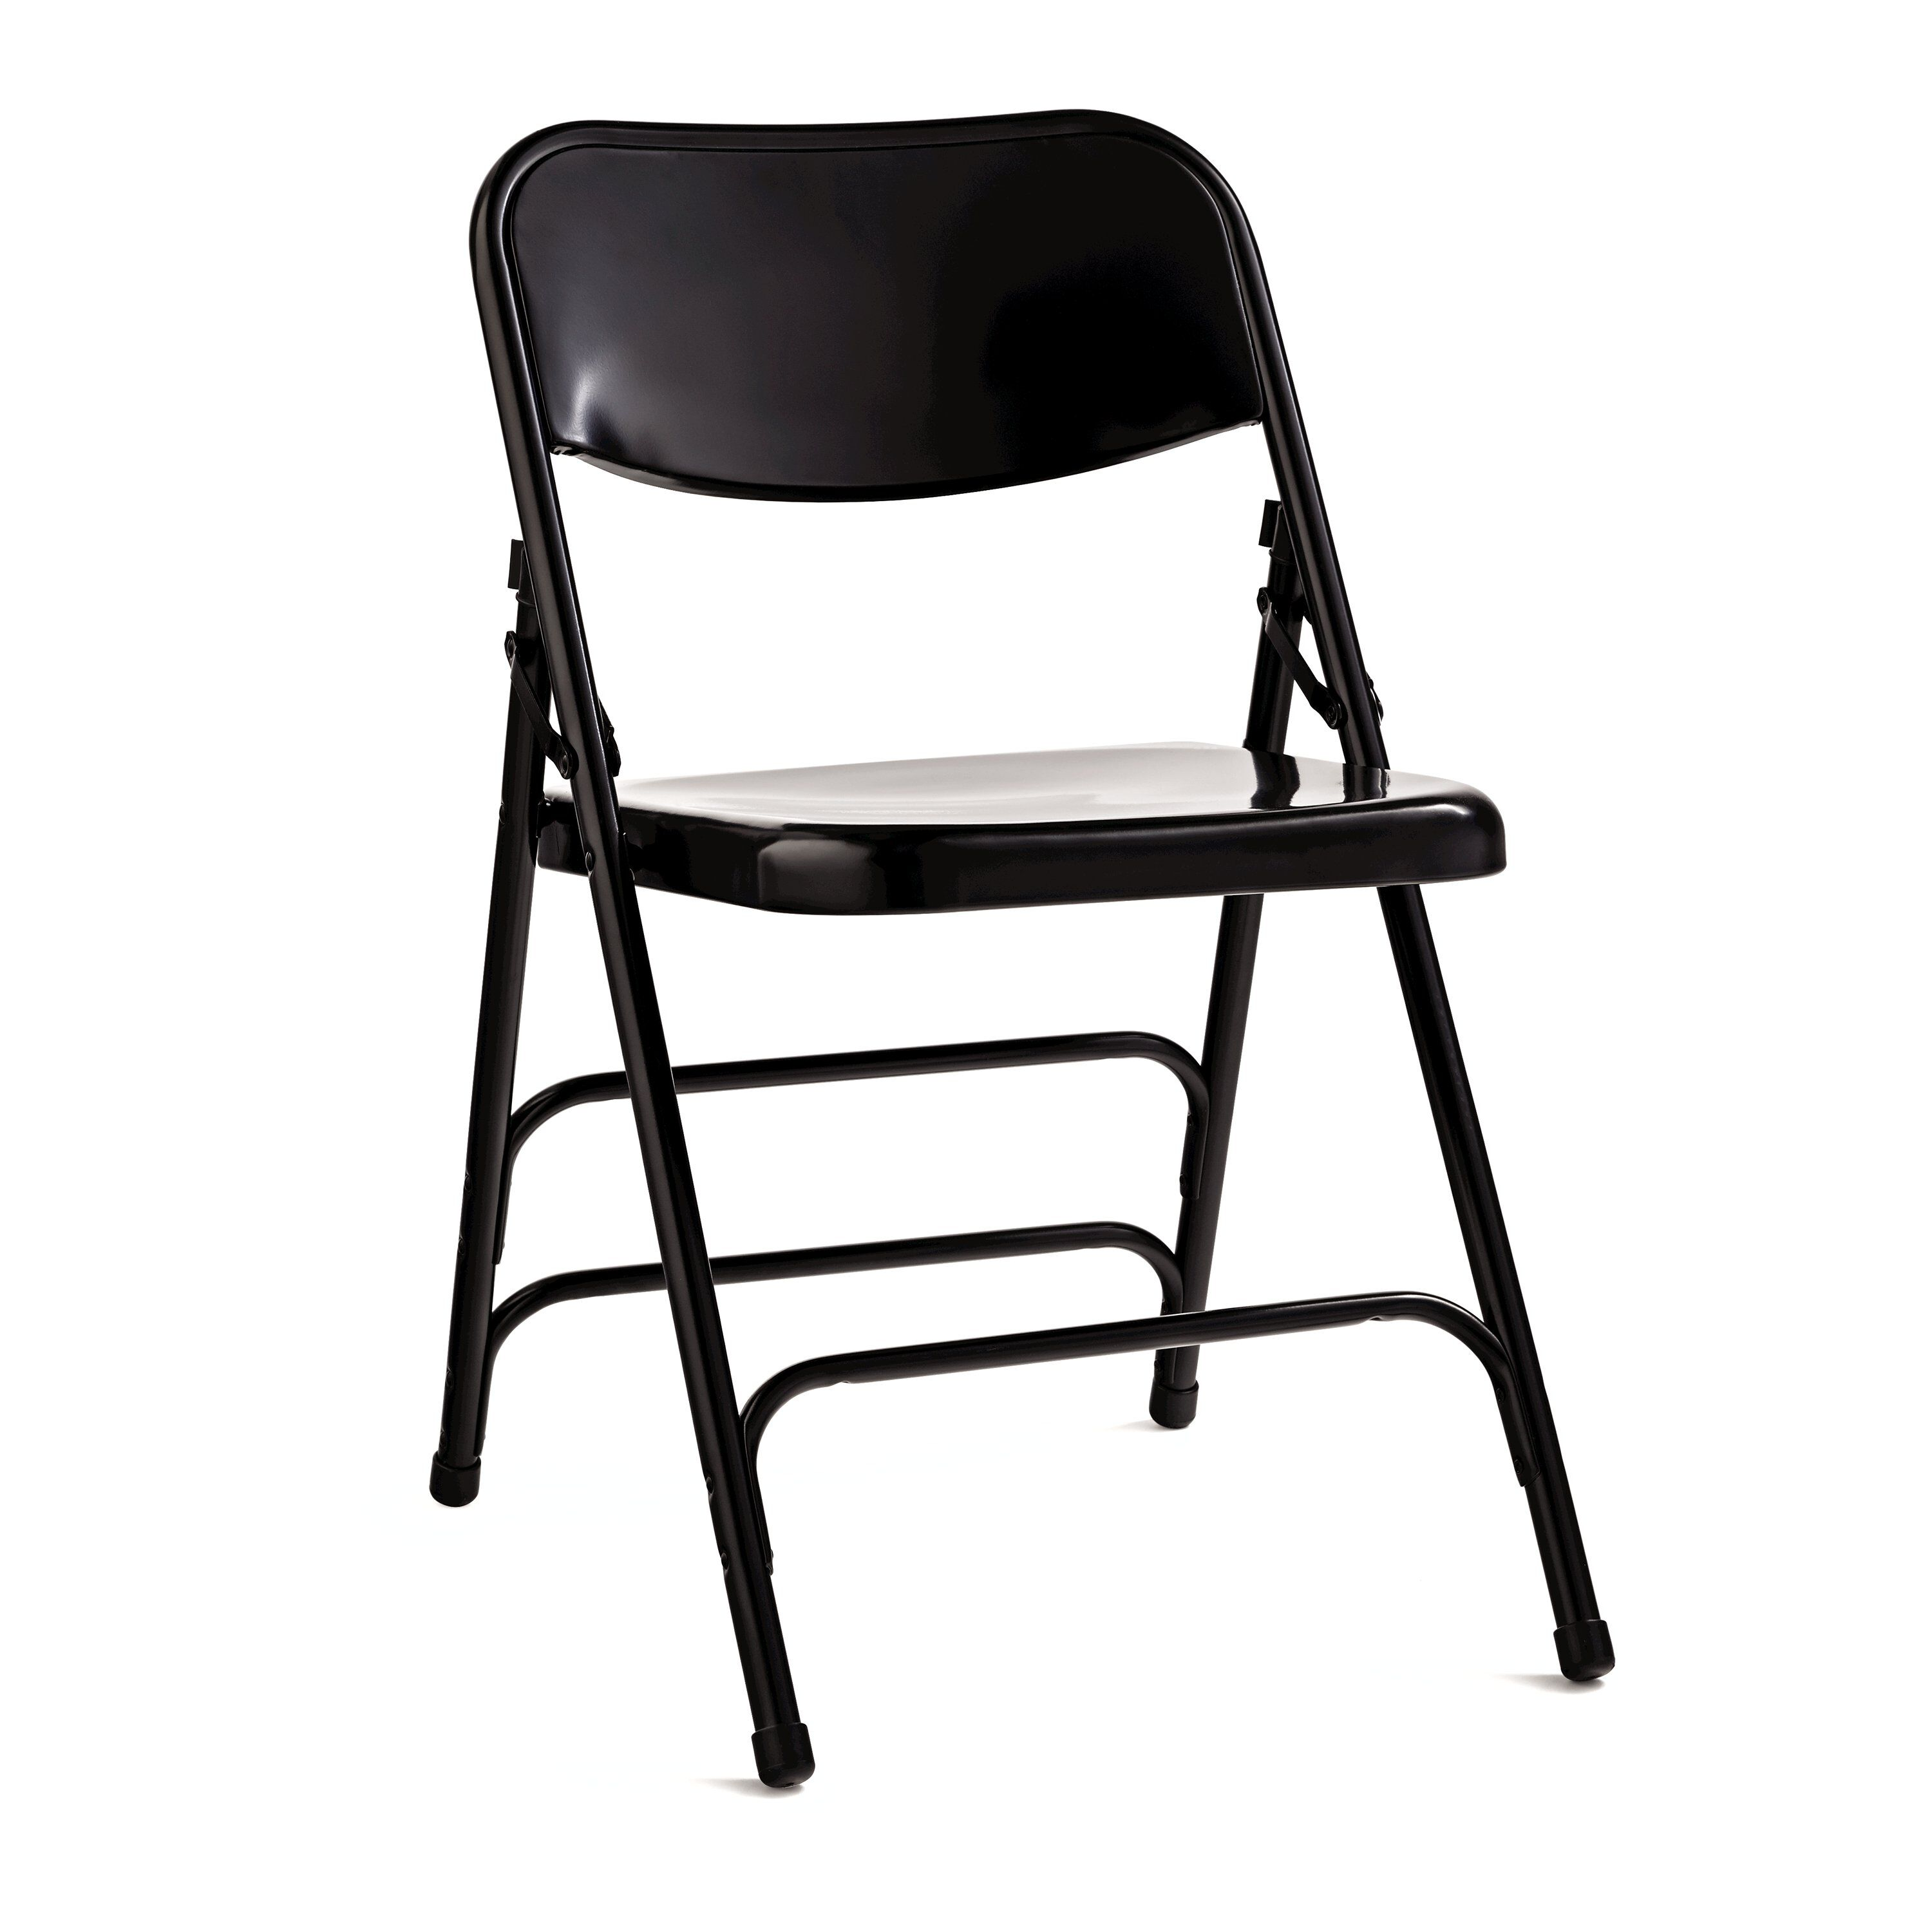 Perfect Samsonite Steel Folding Chair (Case/4) In The Color Black.